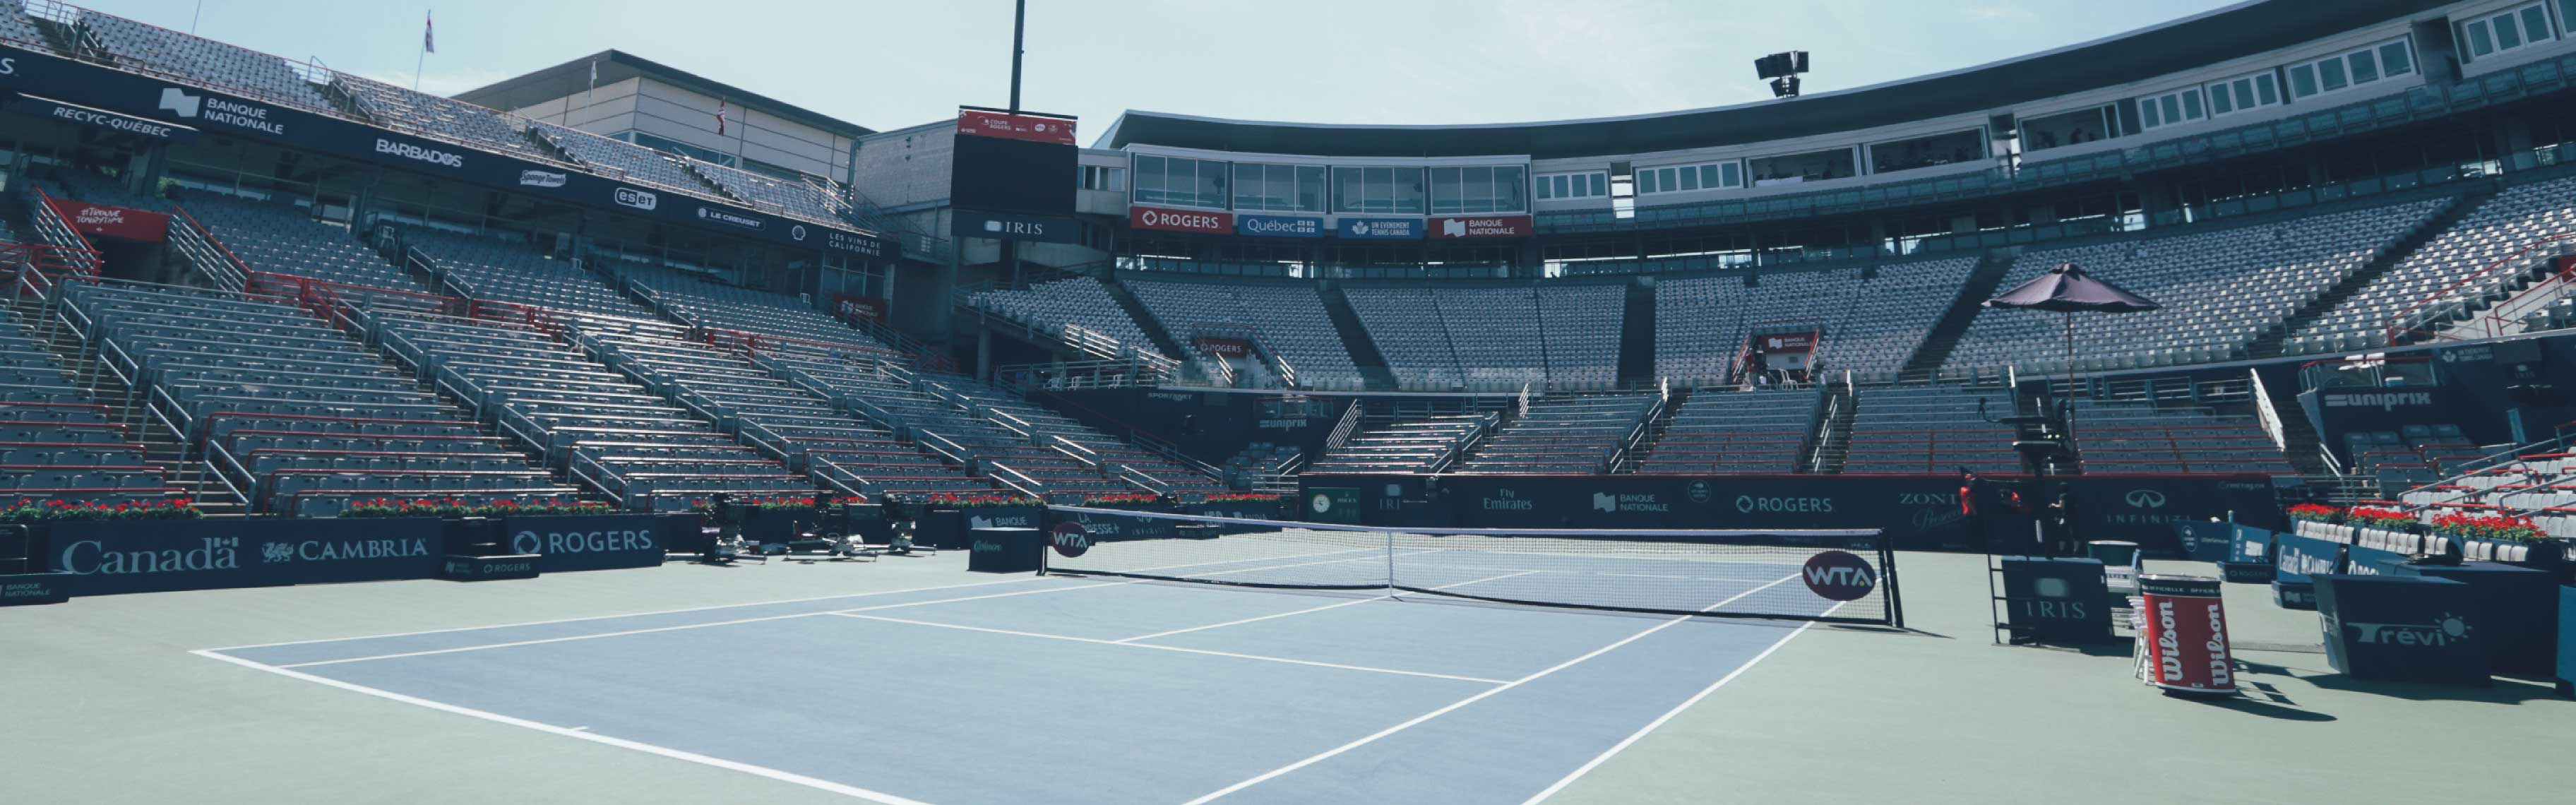 We see the central court of the IGA Stadium during the Rogers Cup, the IRIS logo is on the side of the court and under the giant screen